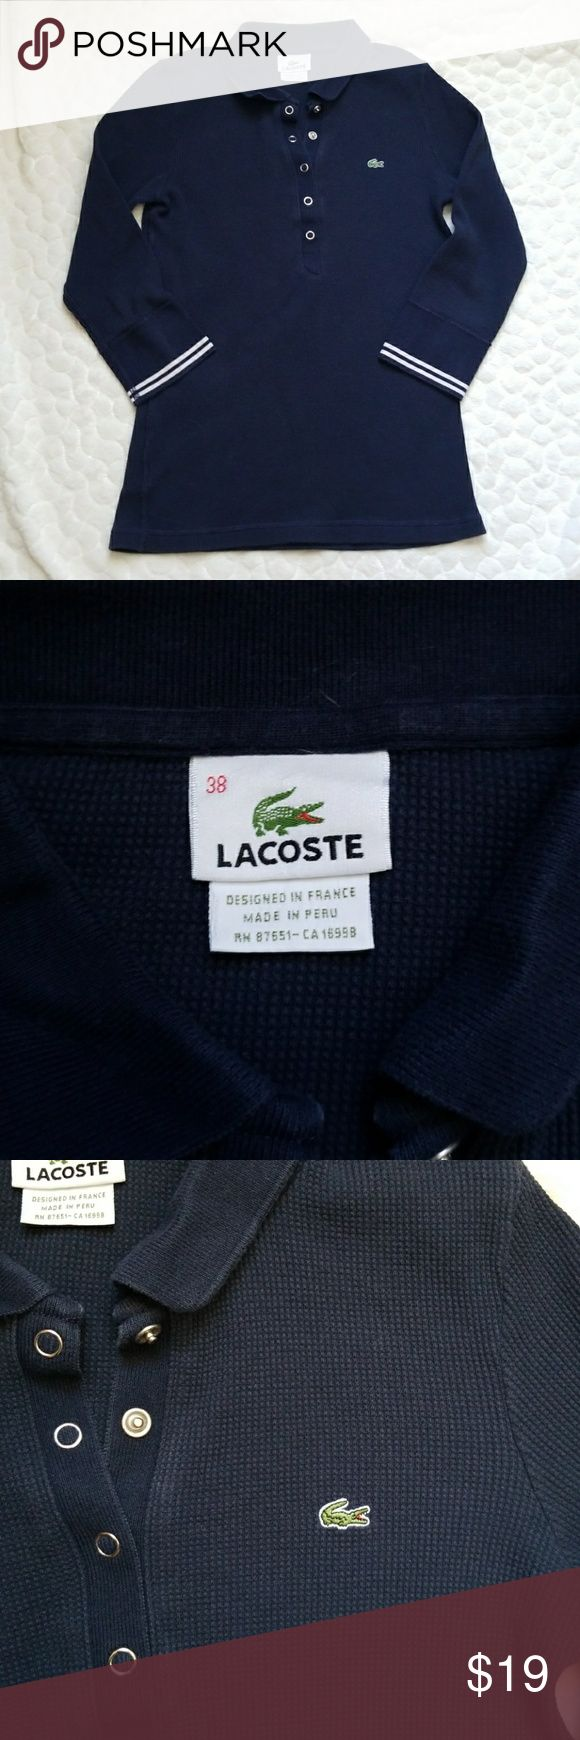 Lacoste waffle knit polo shirt top navy thermal 38 ***Lacoste waffle knit polo. Navy blue thermal style top with buttons and a collar. Size is 38 (according to Lacoste website, that's a size 6. See p ice of measurements). Materials are not listed but it feels like a stretchy thermal-really comfy. Shirt does shows signs of wear with fading. No rips or stains.*** Lacoste Tops